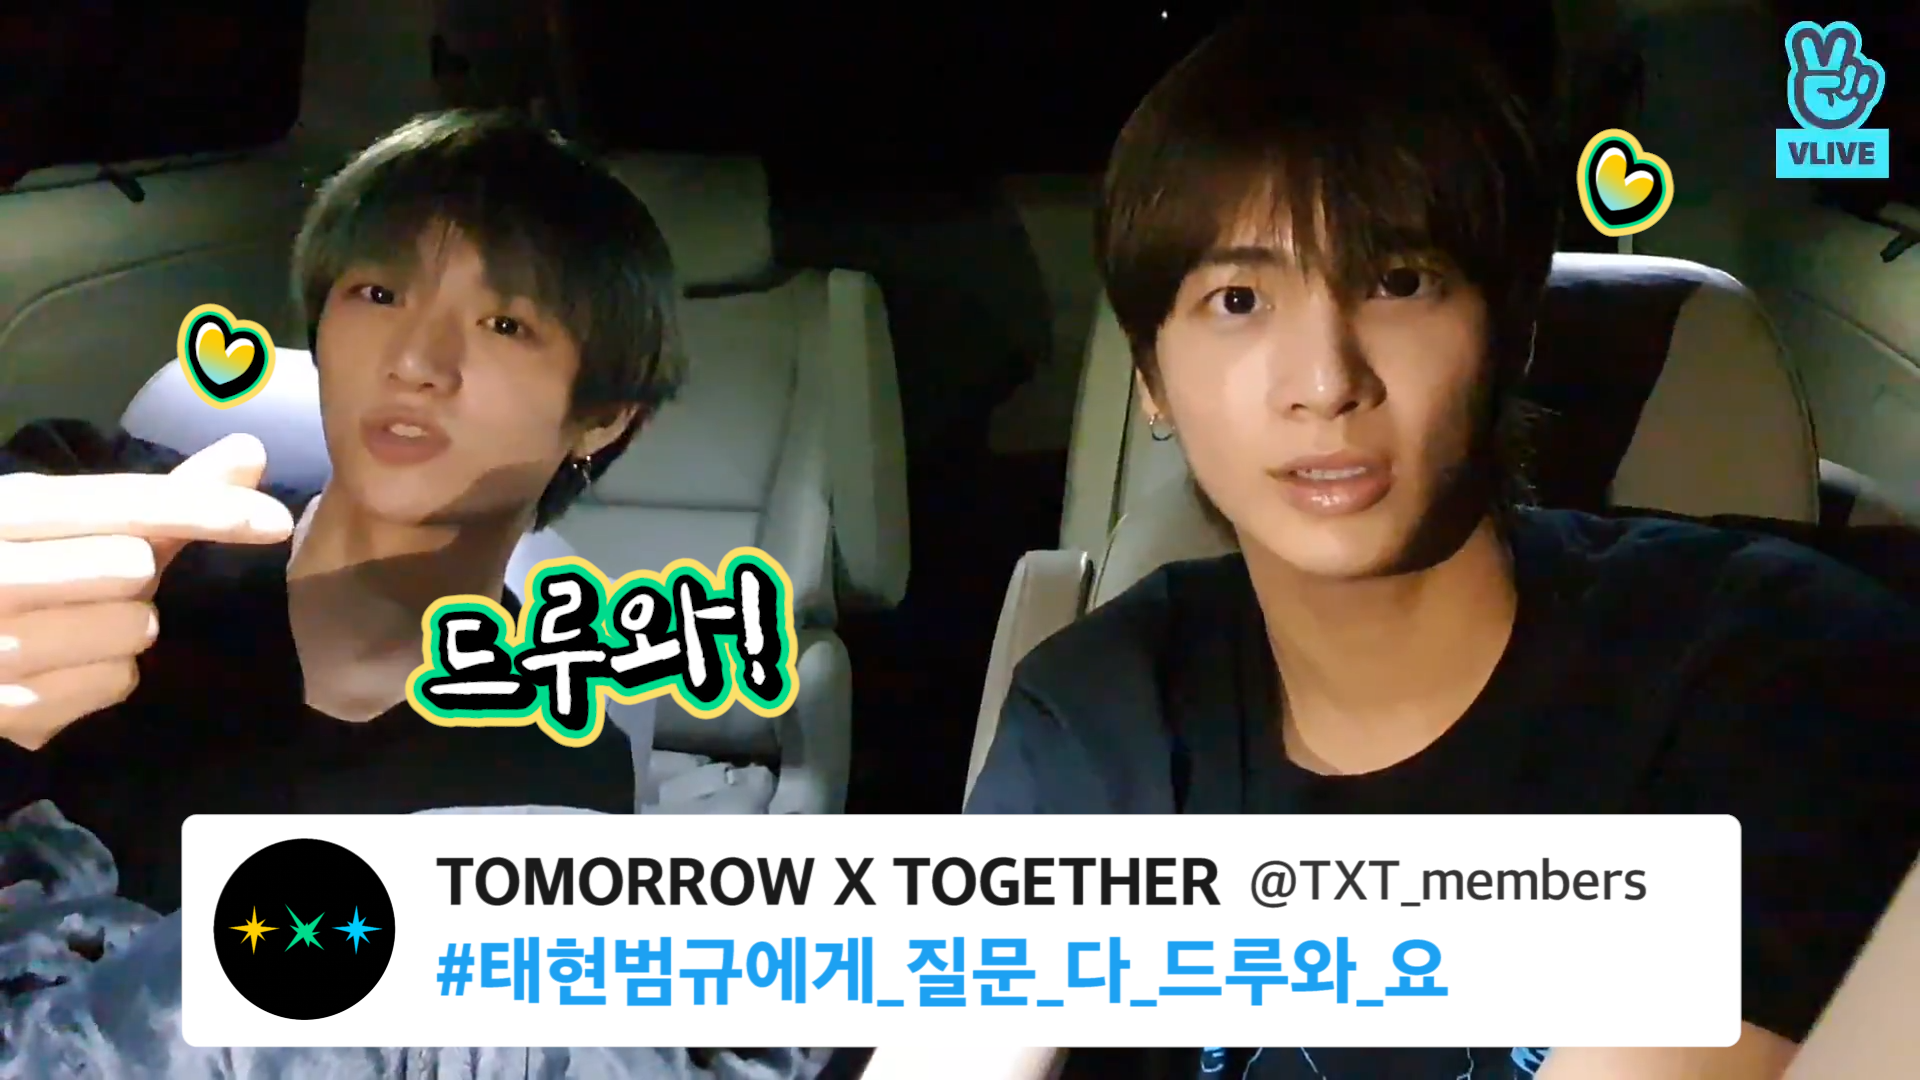 [TXT] 우뿌즈 오조오억년전부터 내 심장 뿌수러 드루와있었다네요❤️👊 (BEOMGYU&TAEHYUN talking about fans' questions)